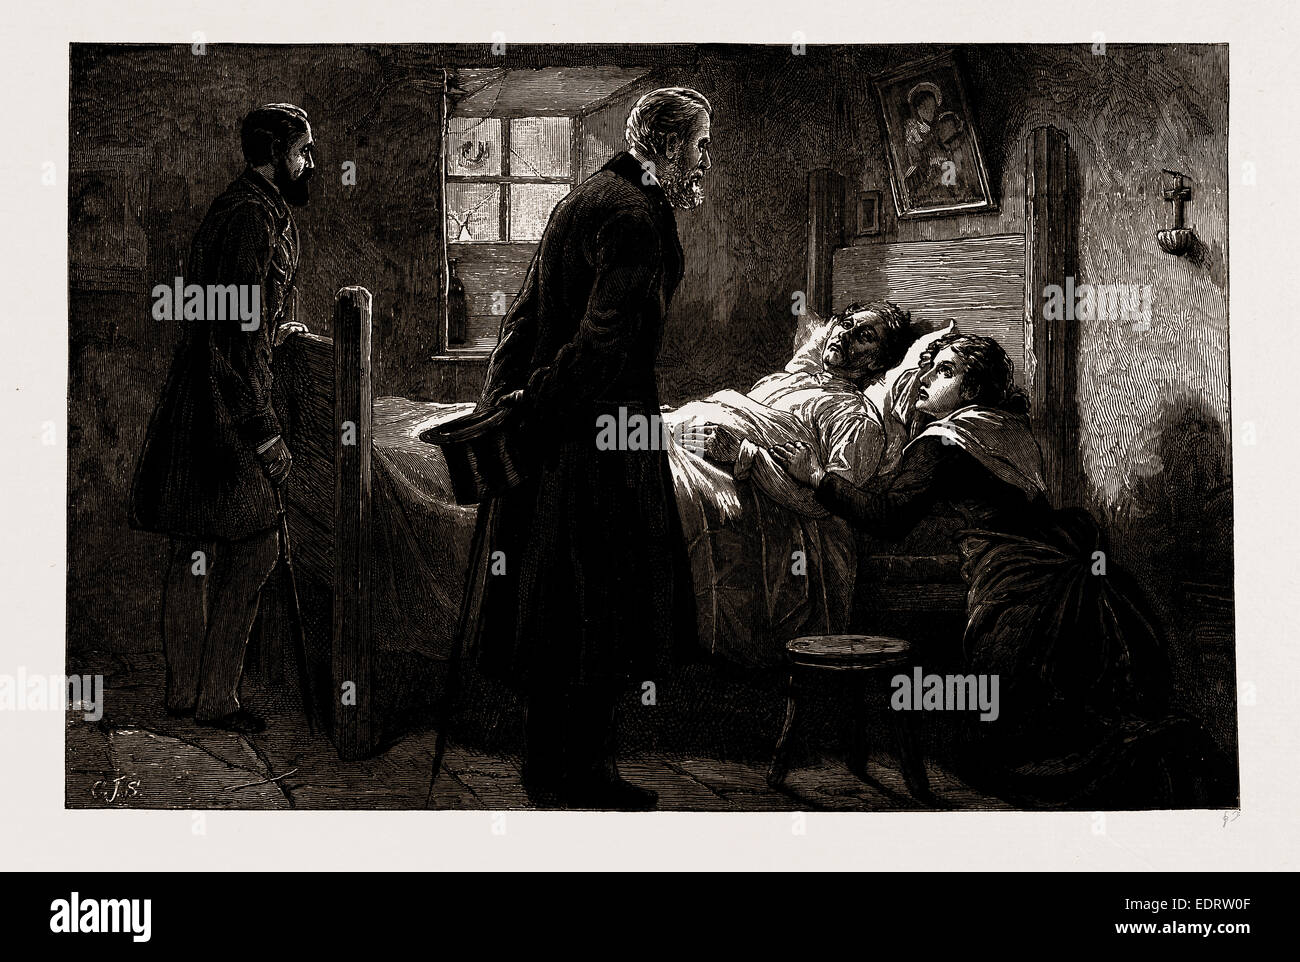 A REMINISCENCE OF THE LATE MR. FORSTER'S IRISH CHIEF SECRETARYSHIP: VISITING A VICTIM OF 'CAPTAIN MOONLIGHT' - Stock Image